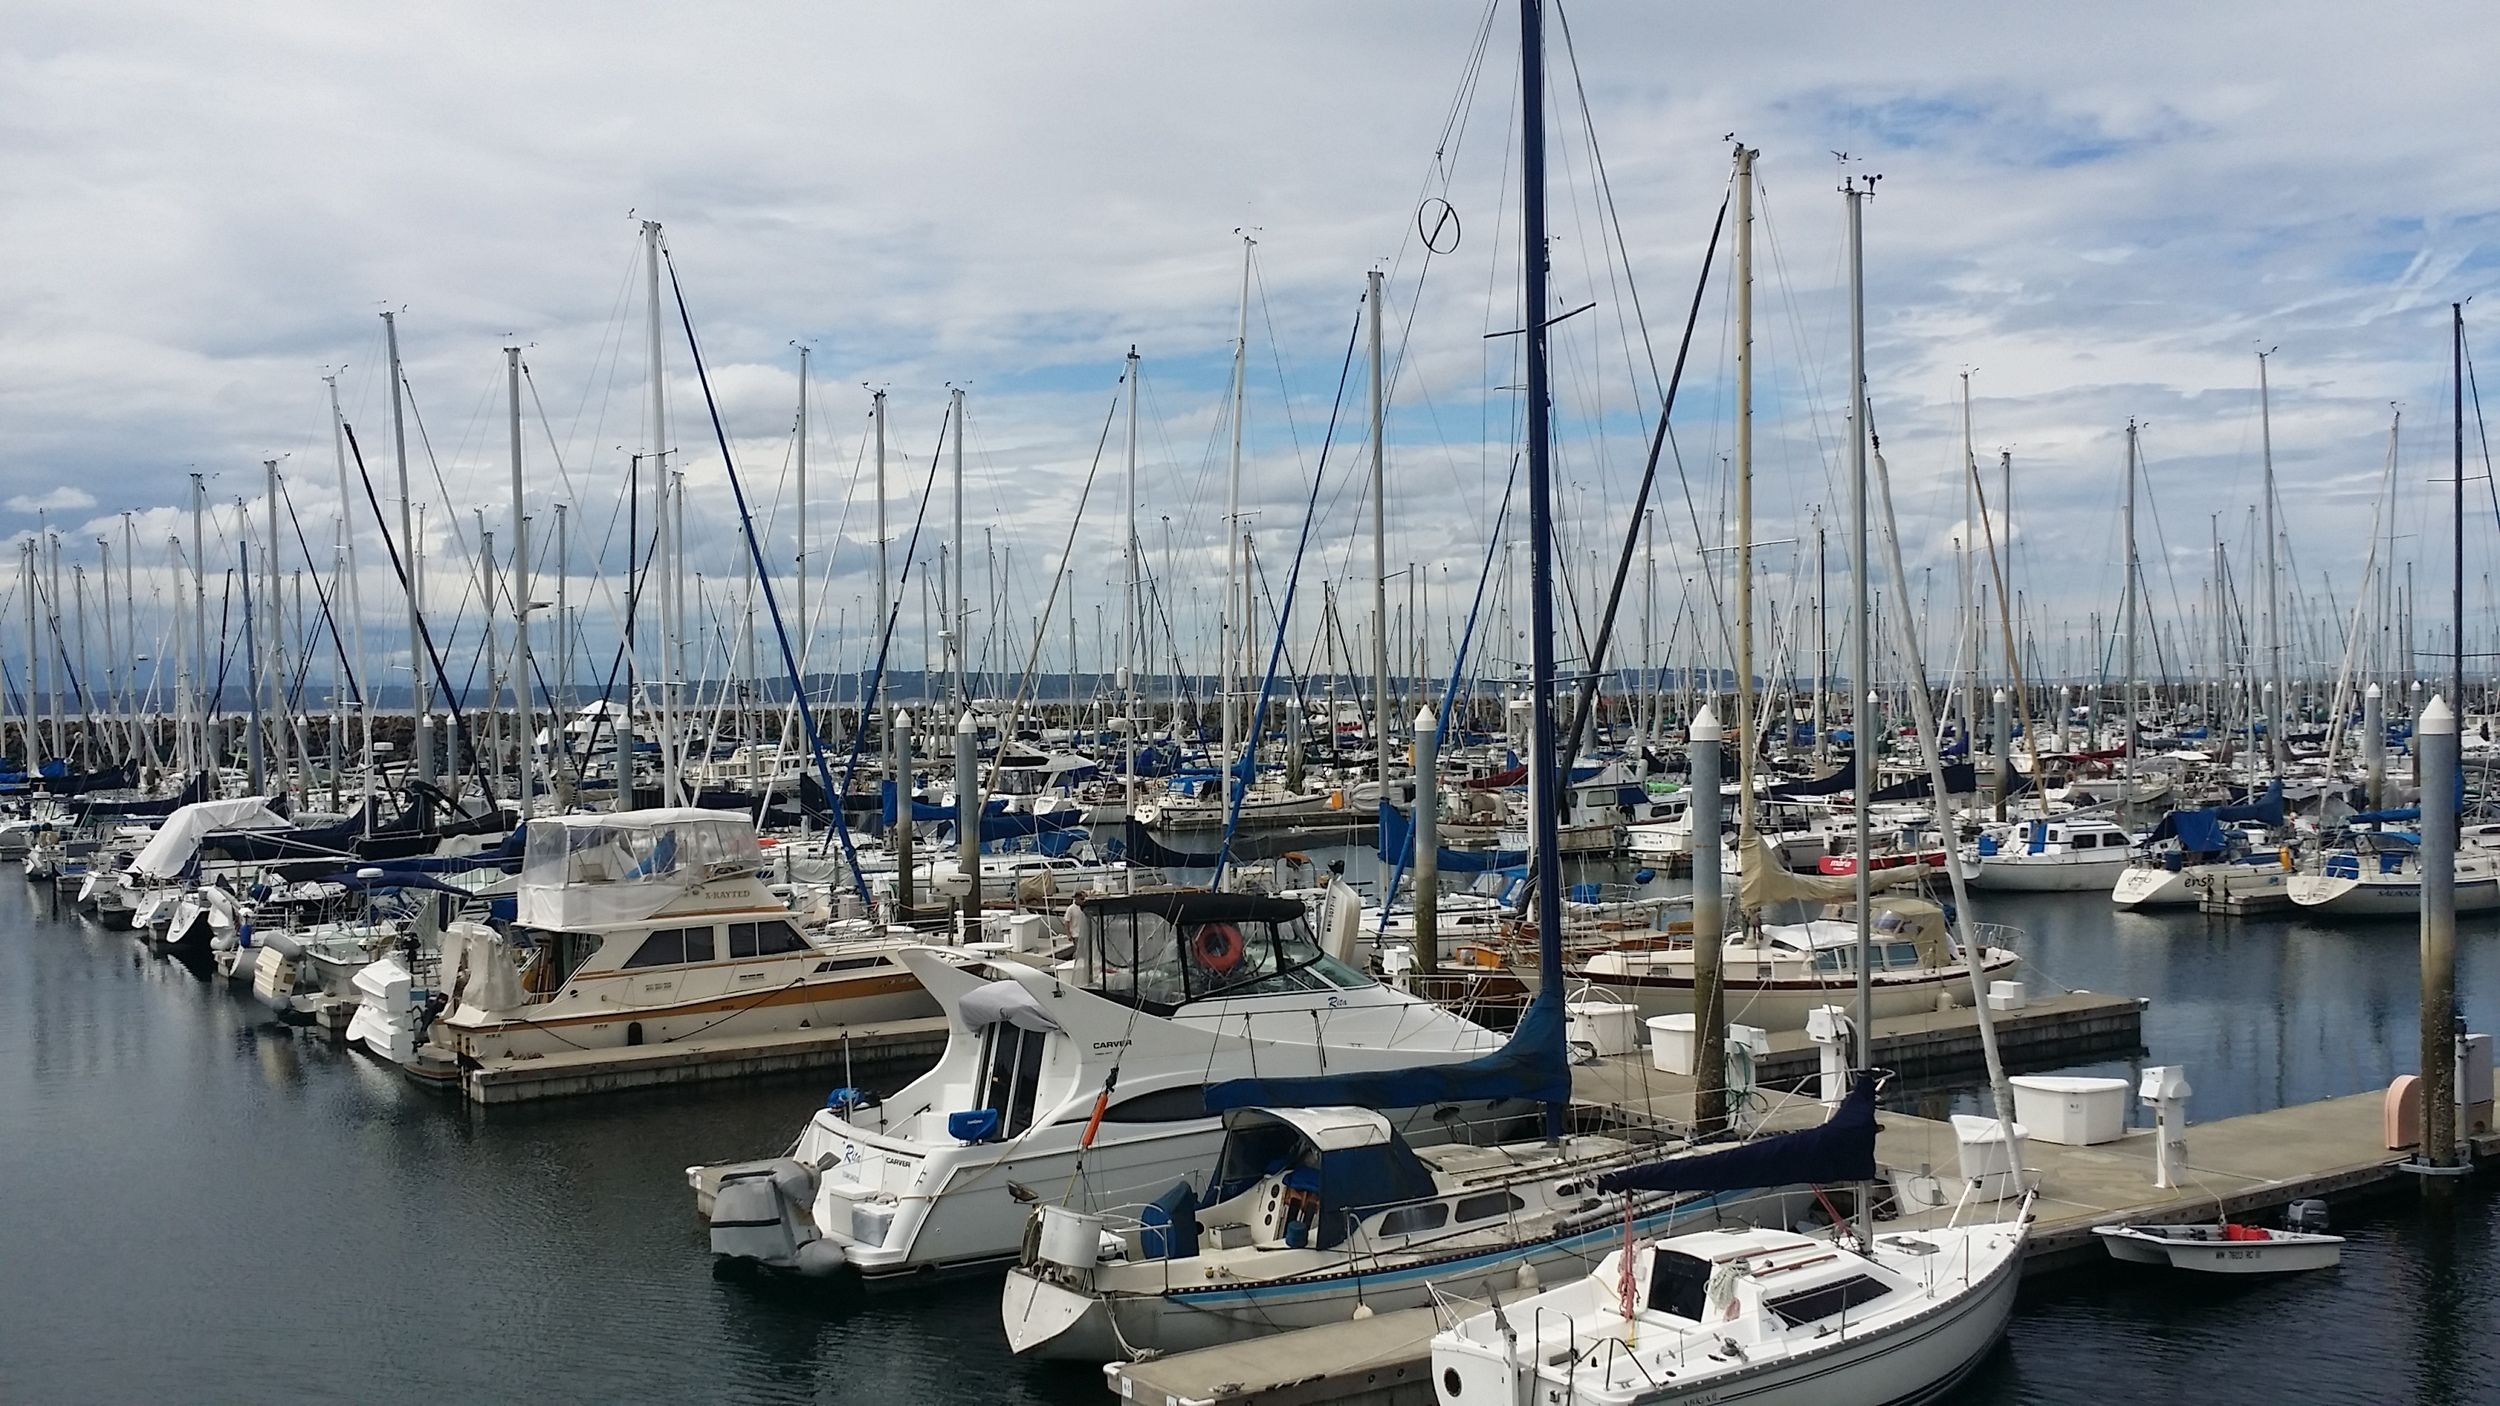 A Day at Shilshole Marina with Lassie Buttermilk